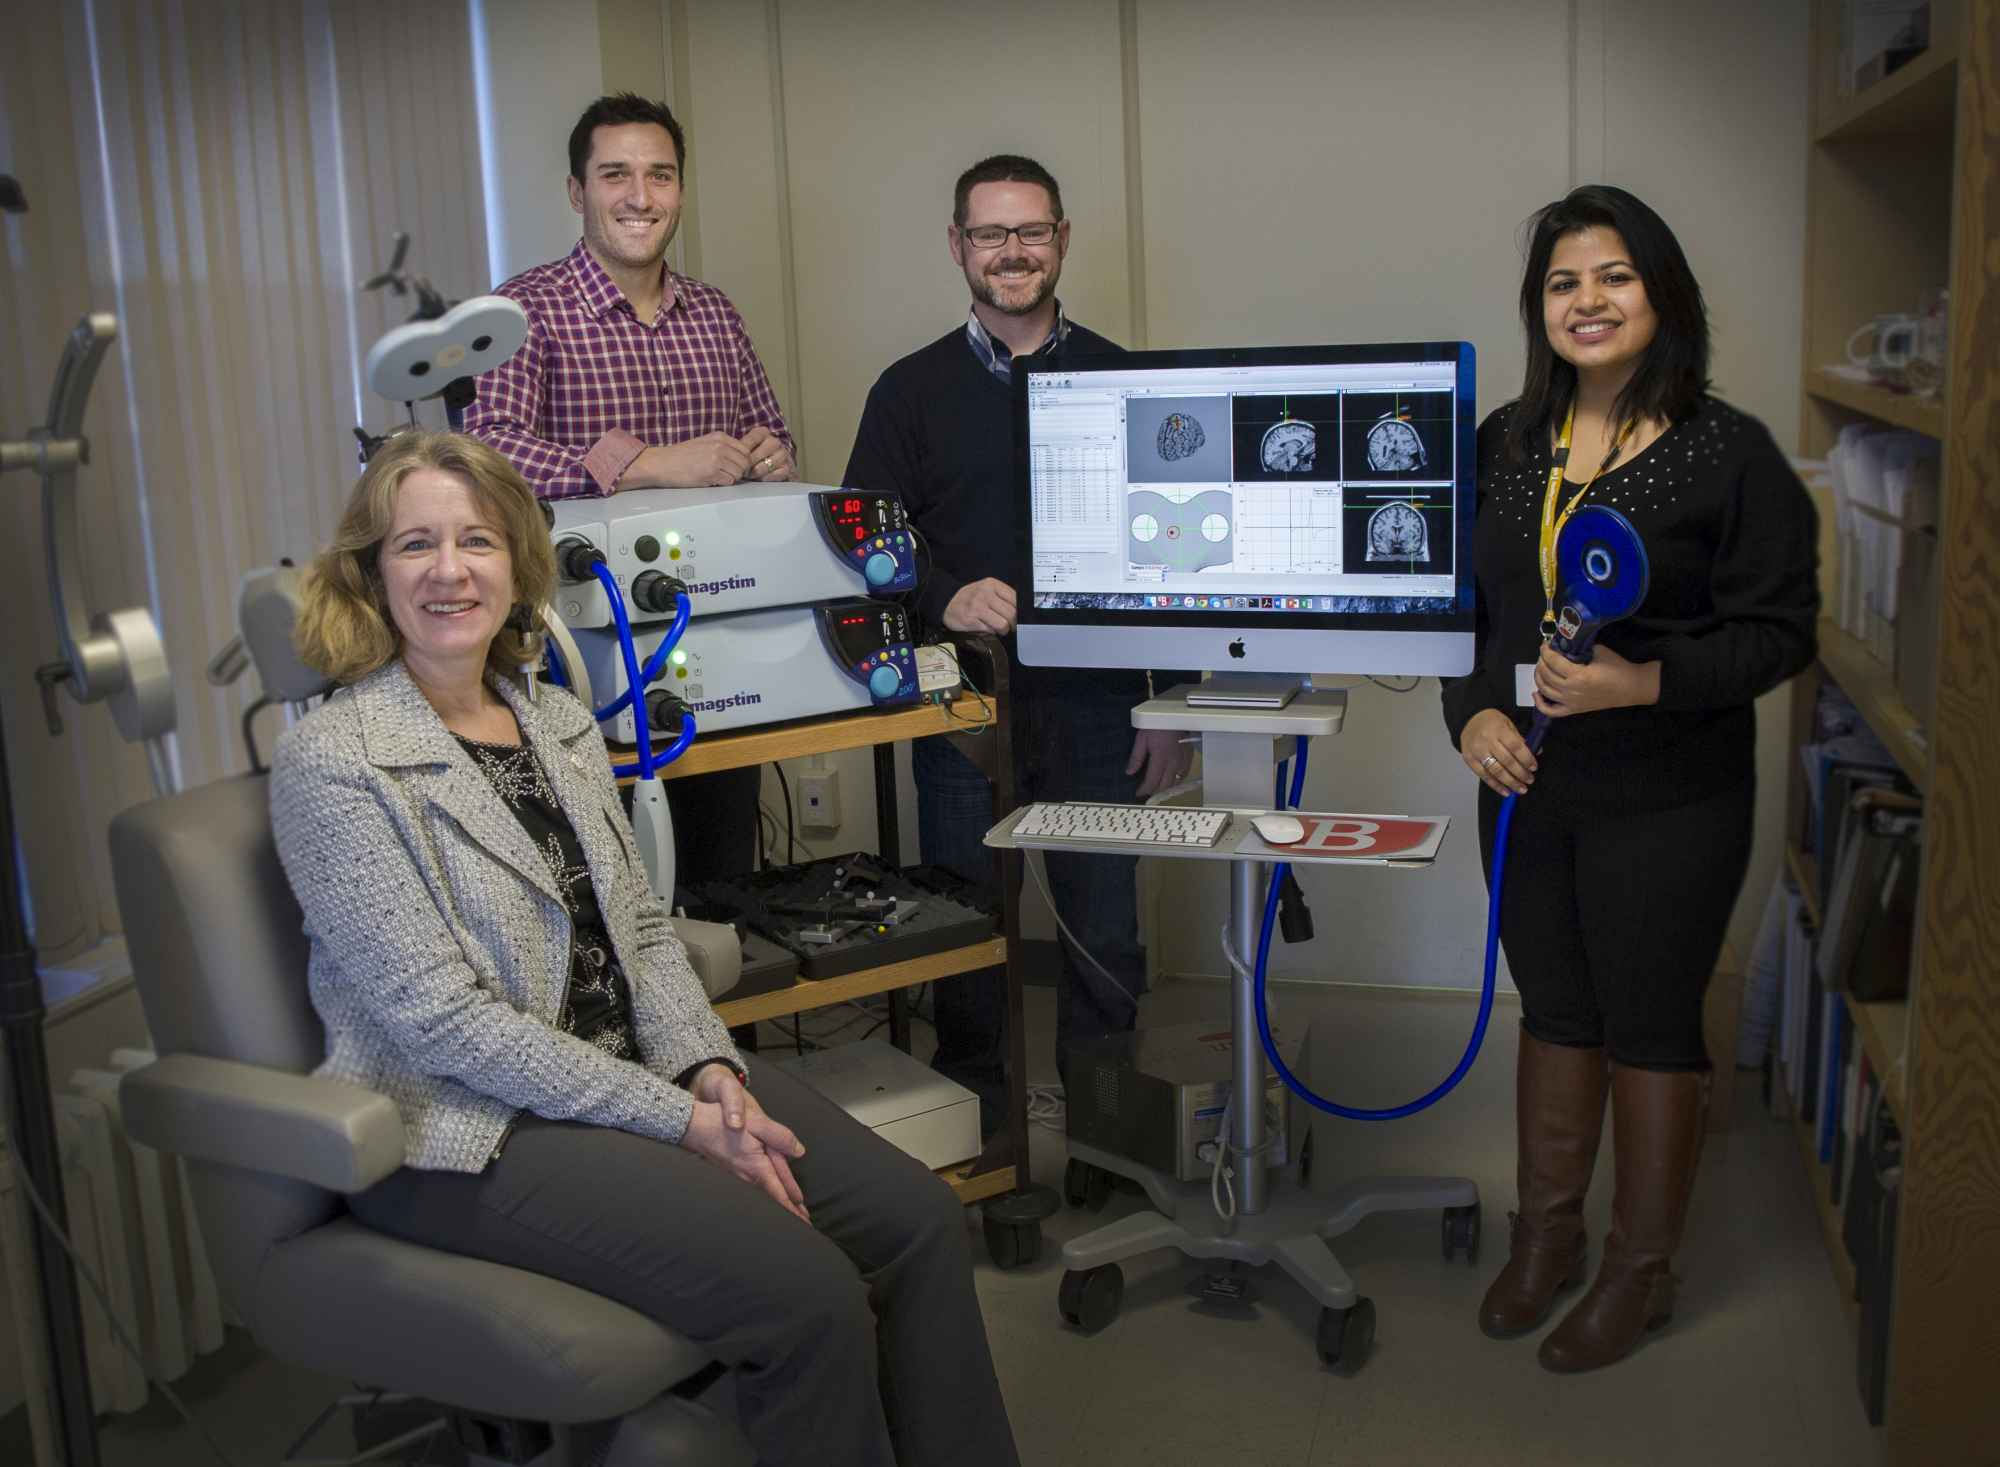 Drs. Michelle Ploughman, Duane Button, and Kevin Power along with Geetika Grover stand with equipment used during testing.